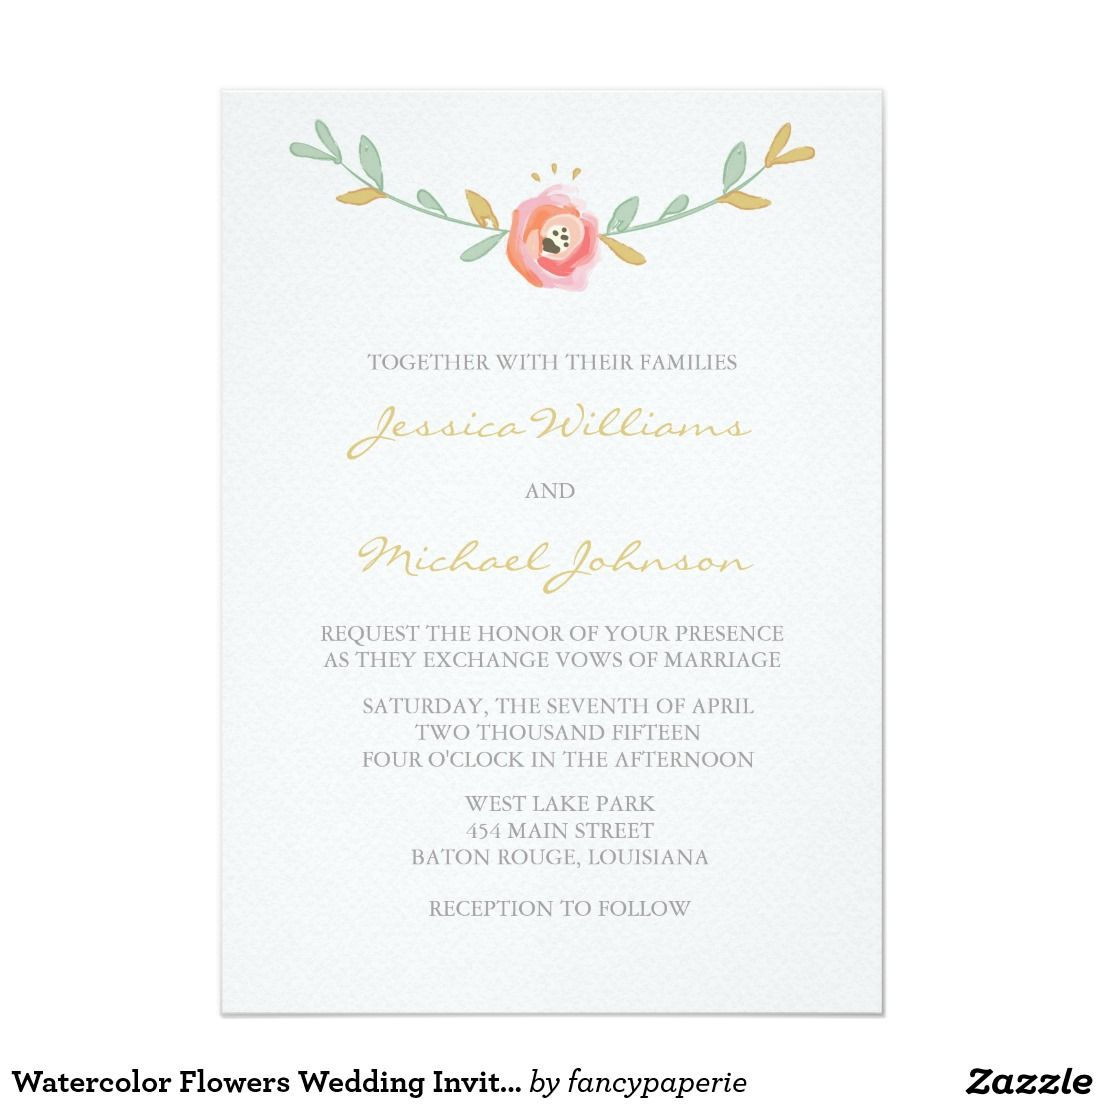 Watercolor Flowers Wedding Invitations 5 X 7 Invitation Card A